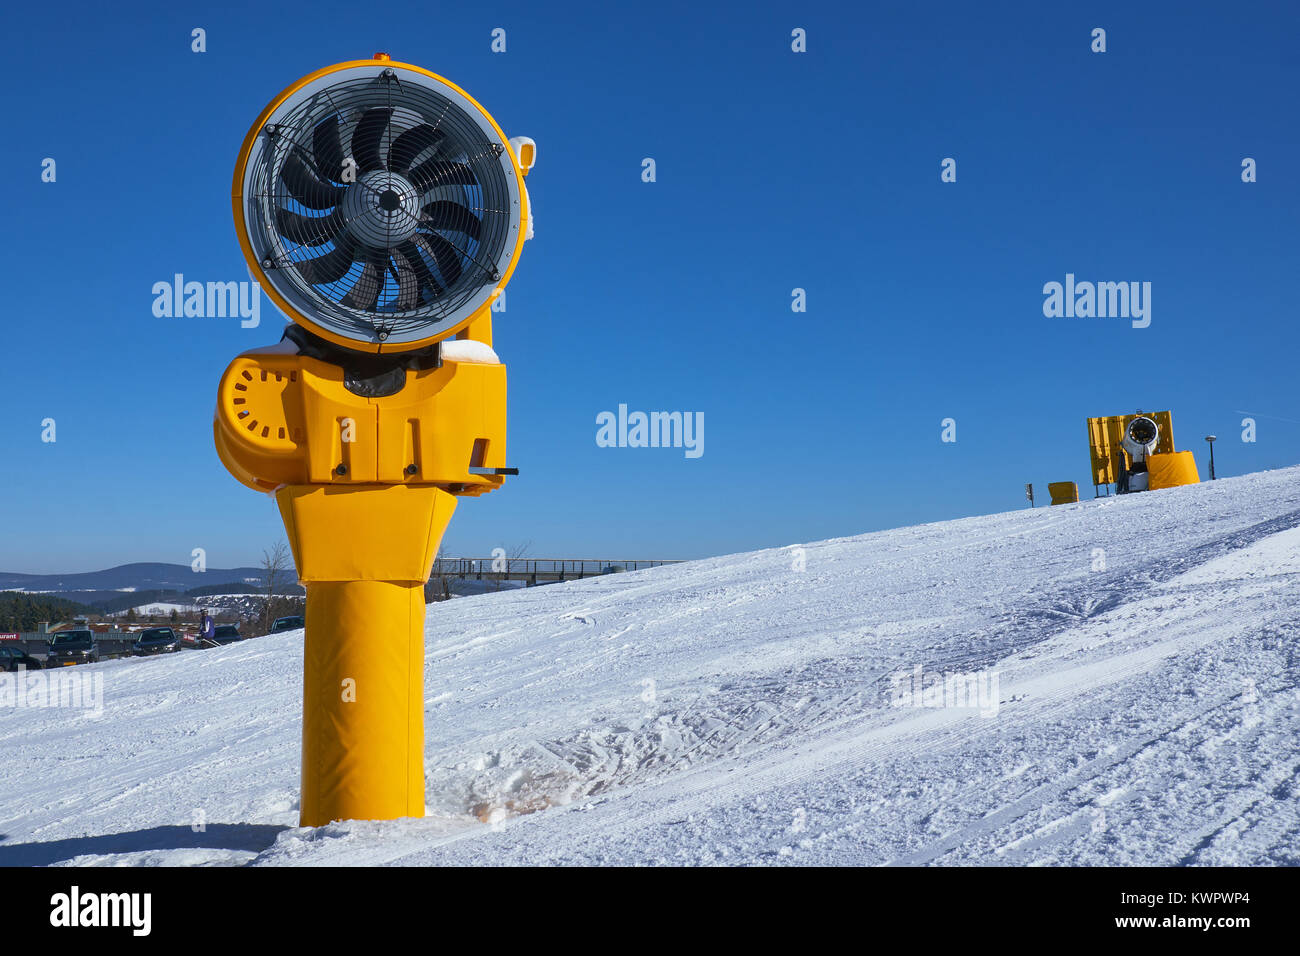 Two turned off yellow snow cannons on a piste at Ski Carousel Winterberg against a clear blue sky - Stock Image